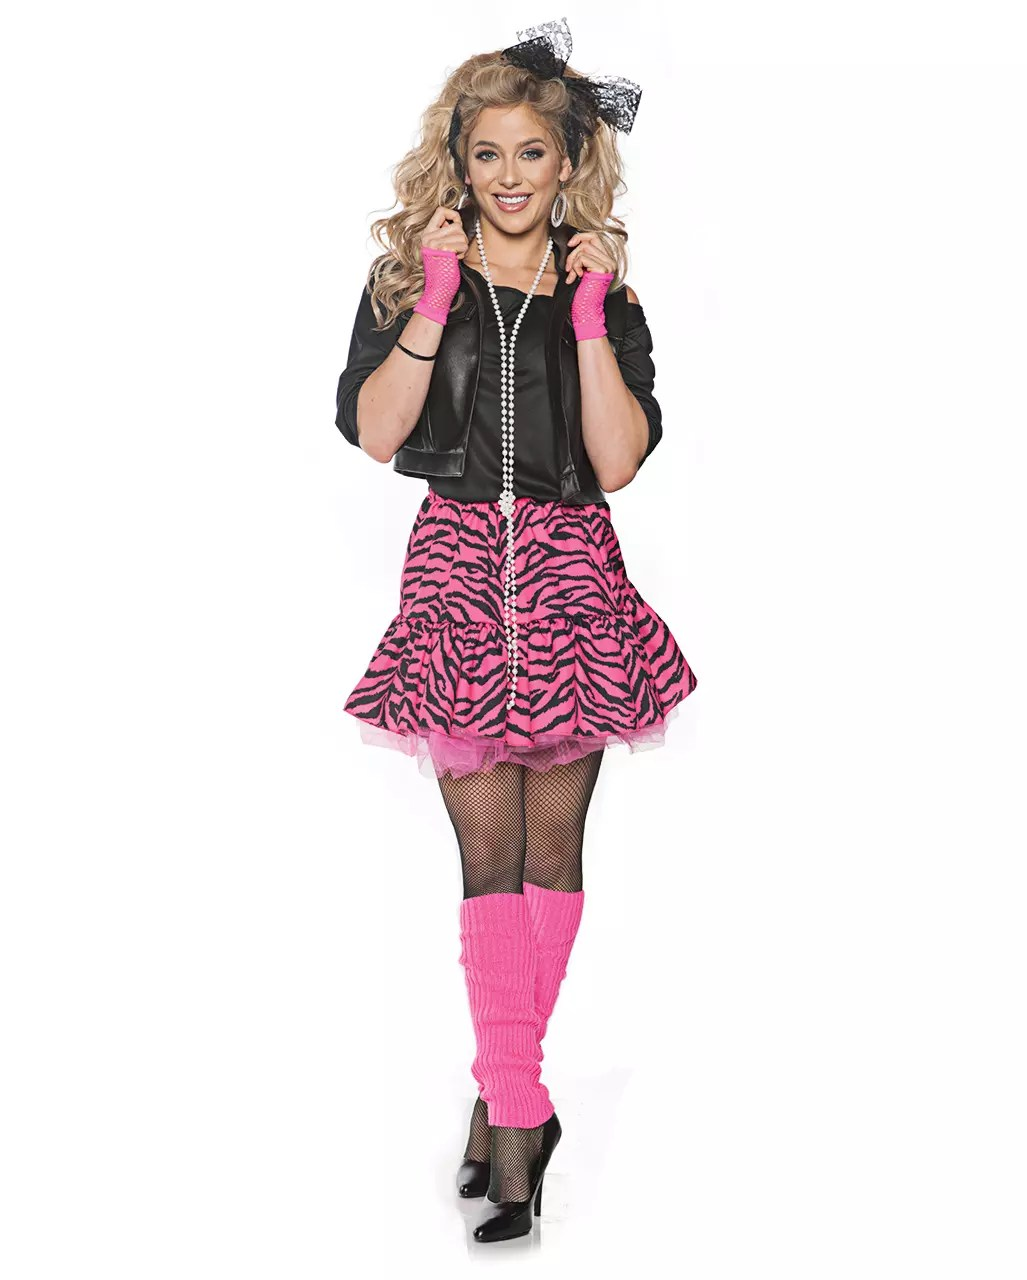 80iger Jahre Look 80s Pop Star Diva Costume